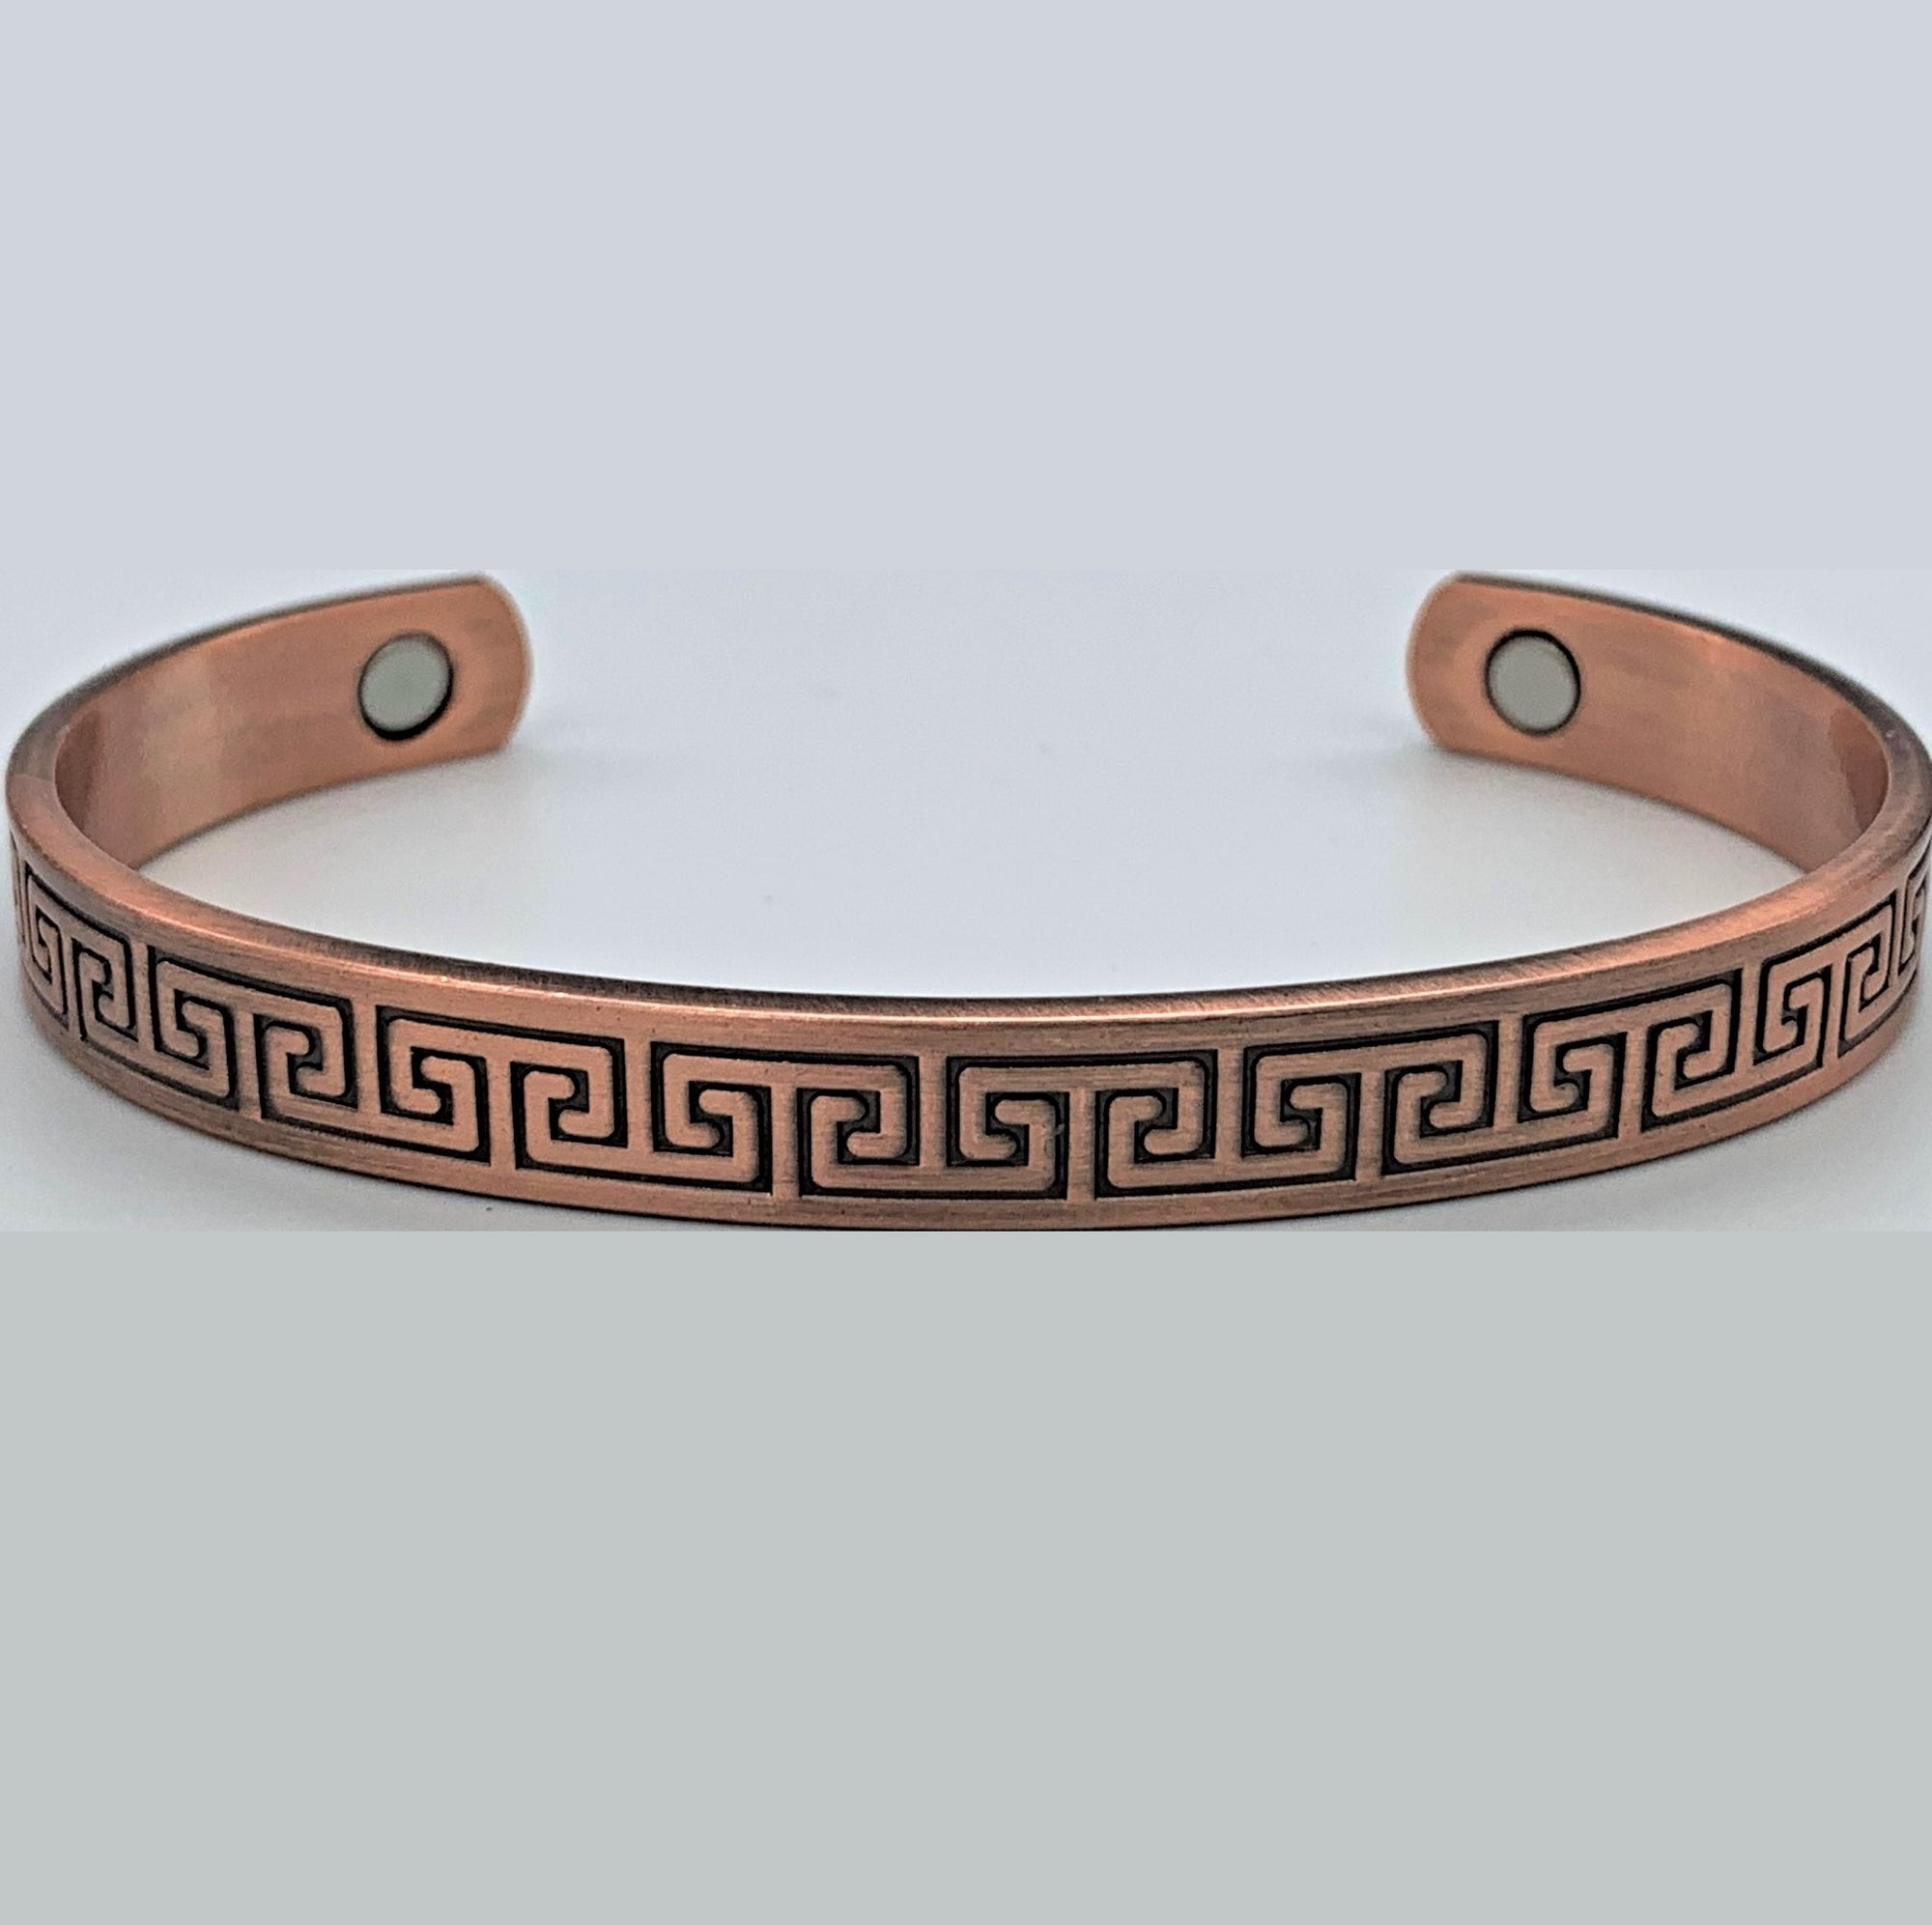 Arabesque Copper Magnetic Bracelet - Rivendell Shop NZ